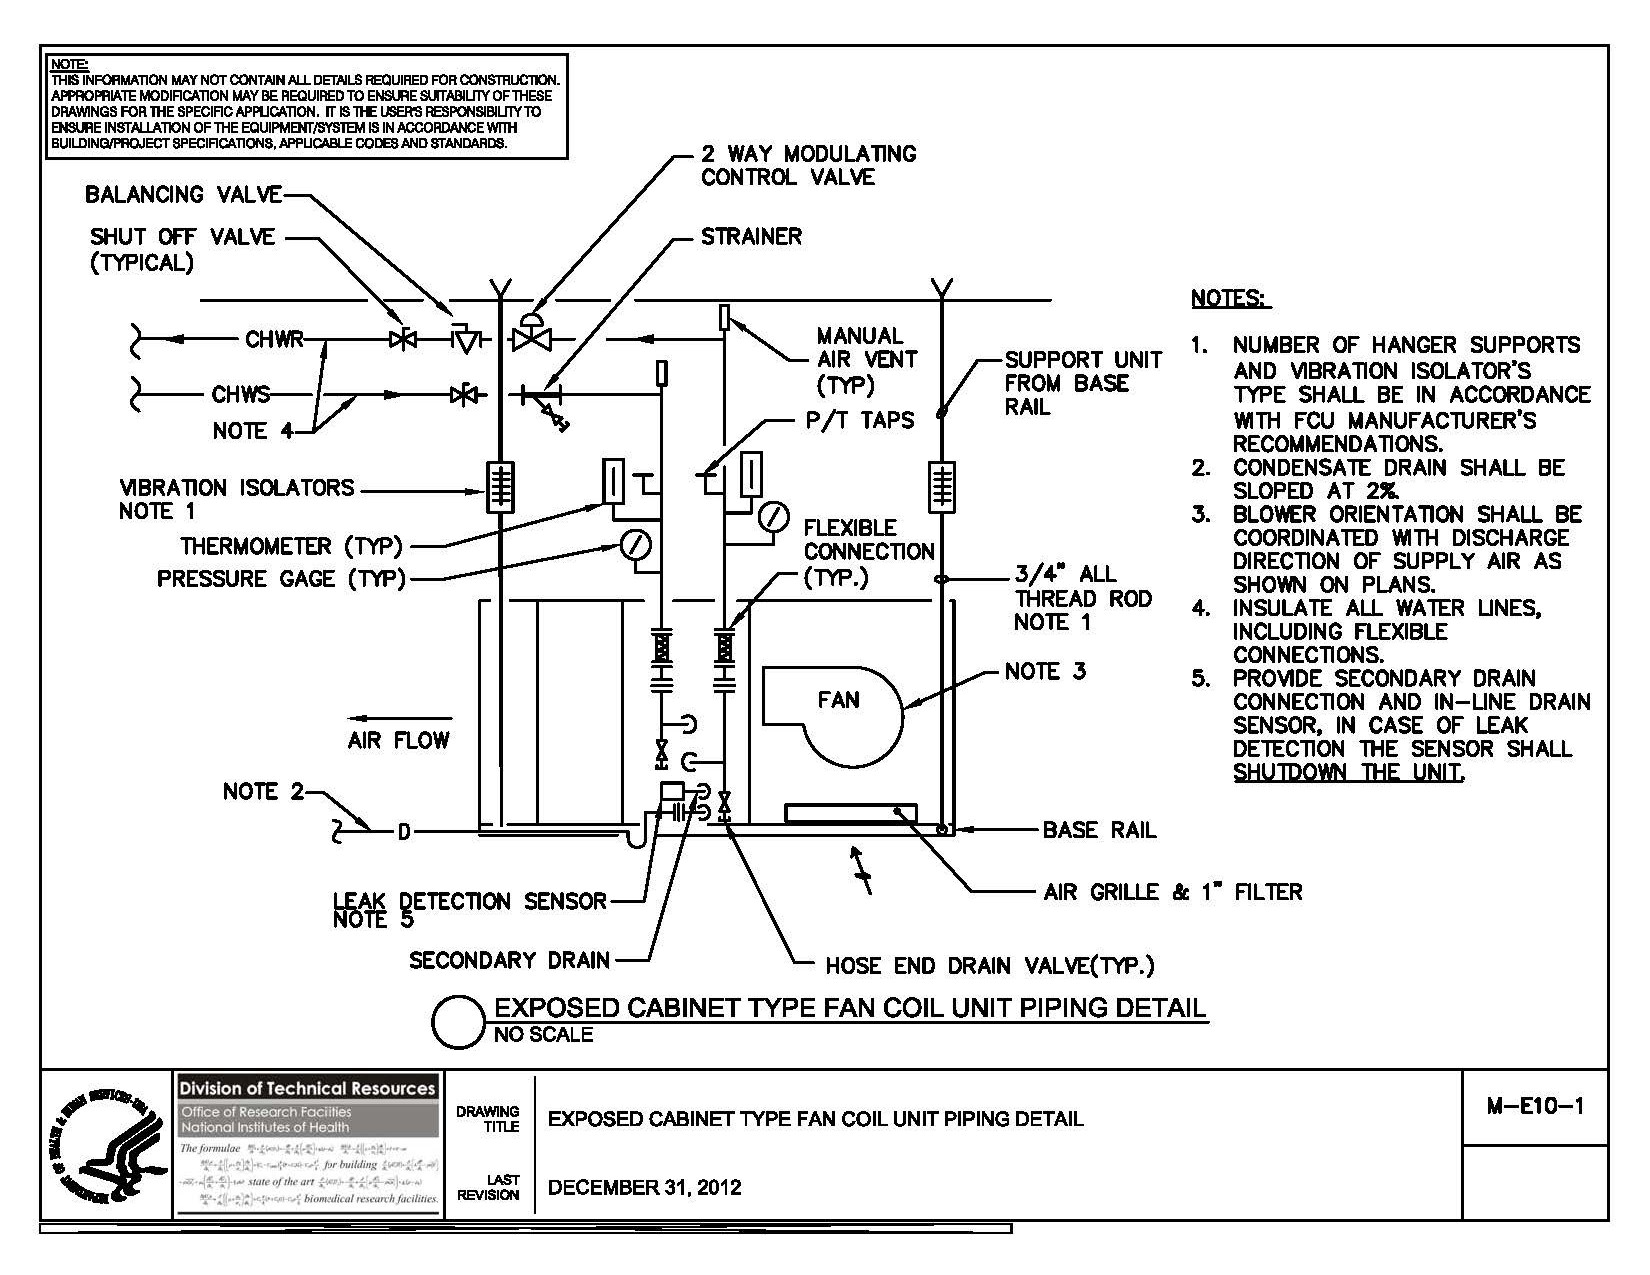 Fan Coil Unit Piping Diagram Hvac Wiring Electric